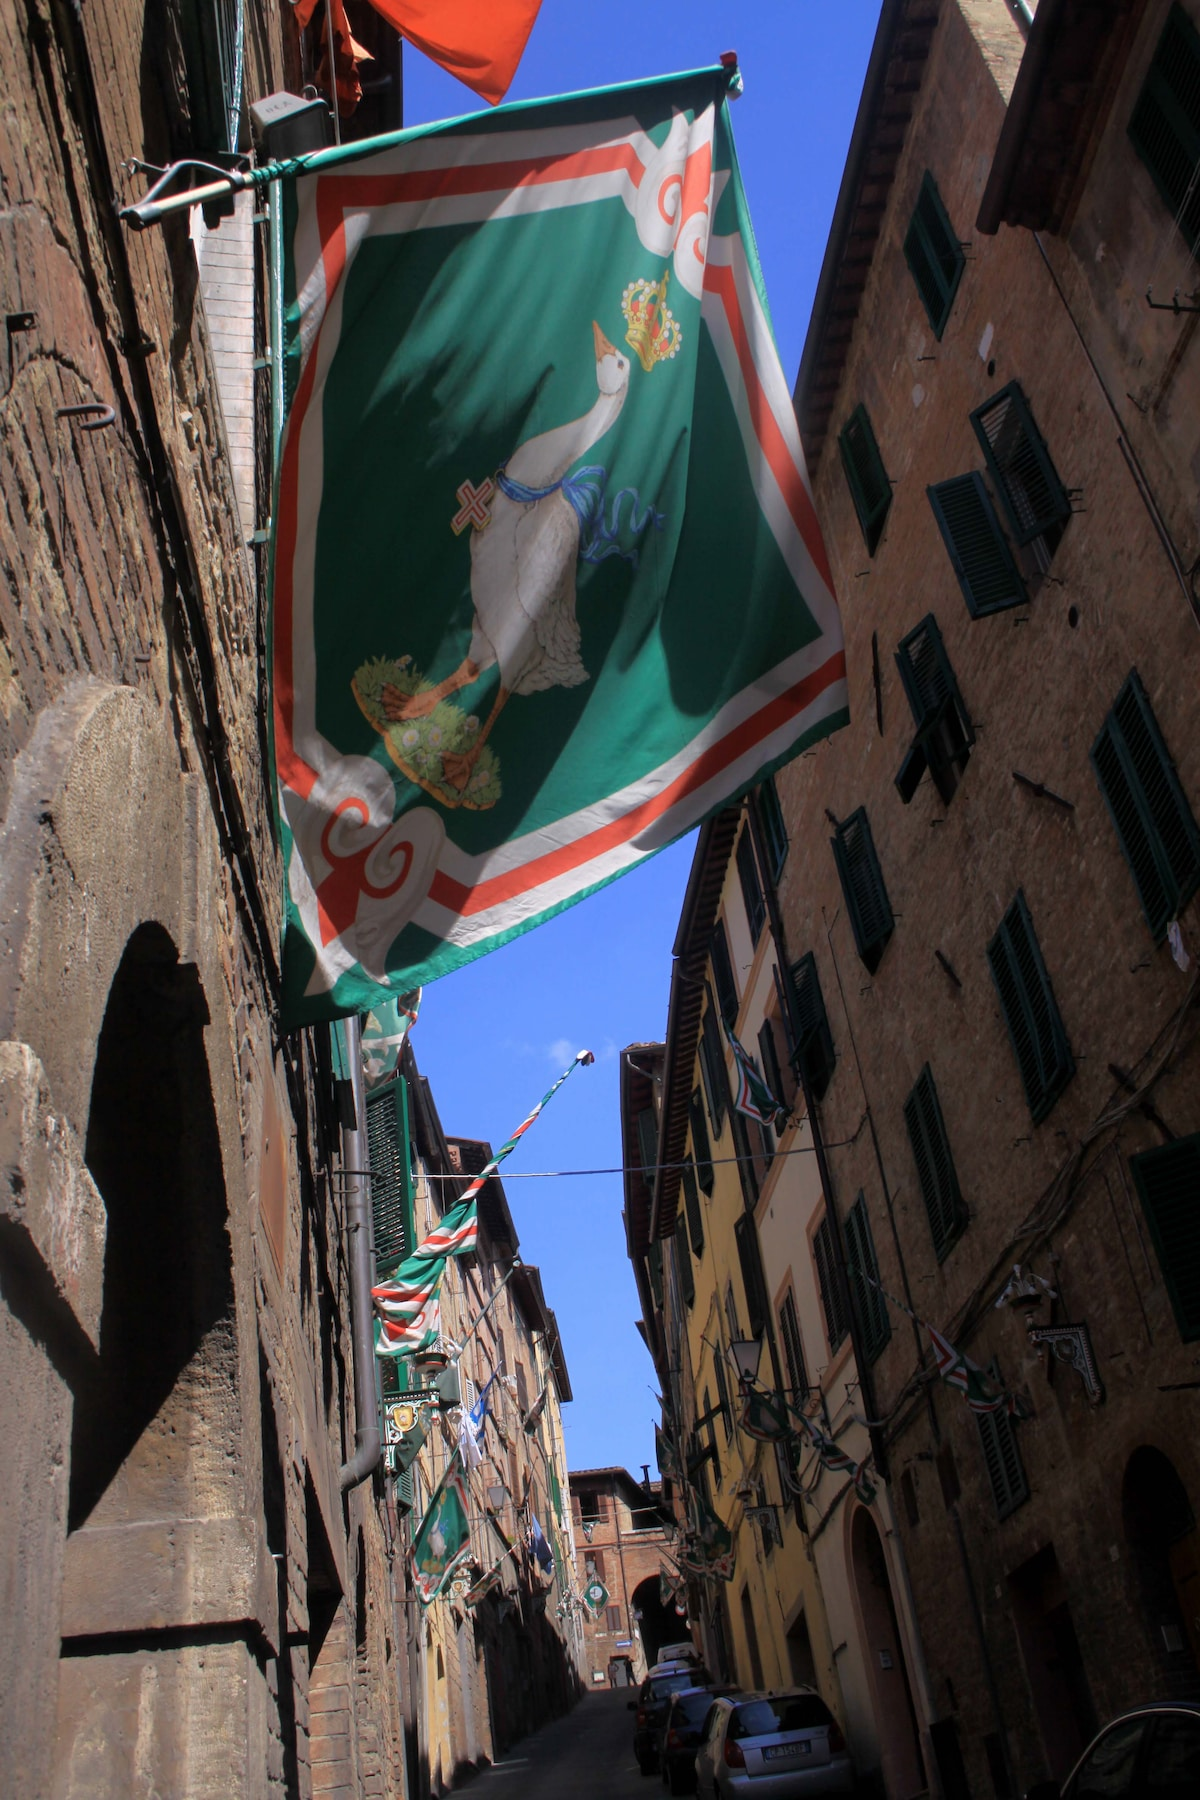 The flag of the Goose district in Santa Caterina street